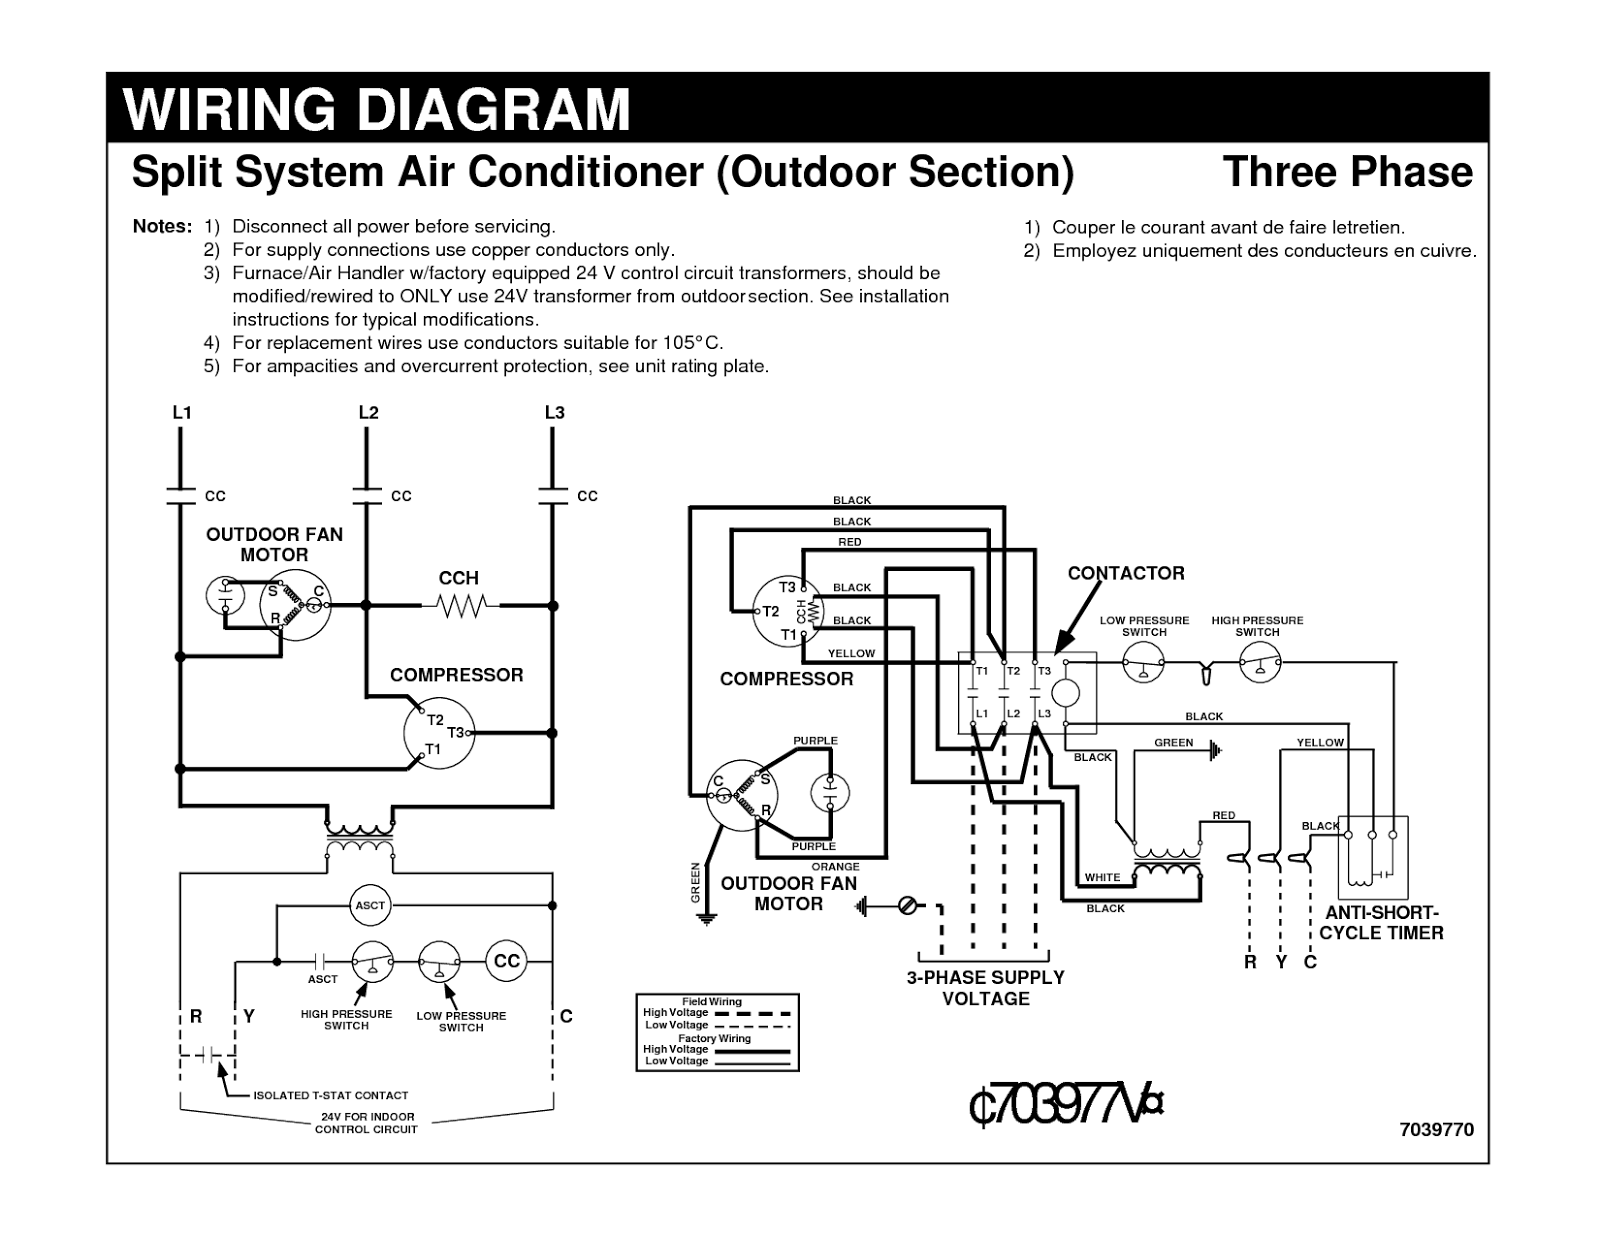 Ac Unit Wiring Diagrams Diagram Schemes Case 75xt Split System Schematics Rh Mychampagnedaze Com Window